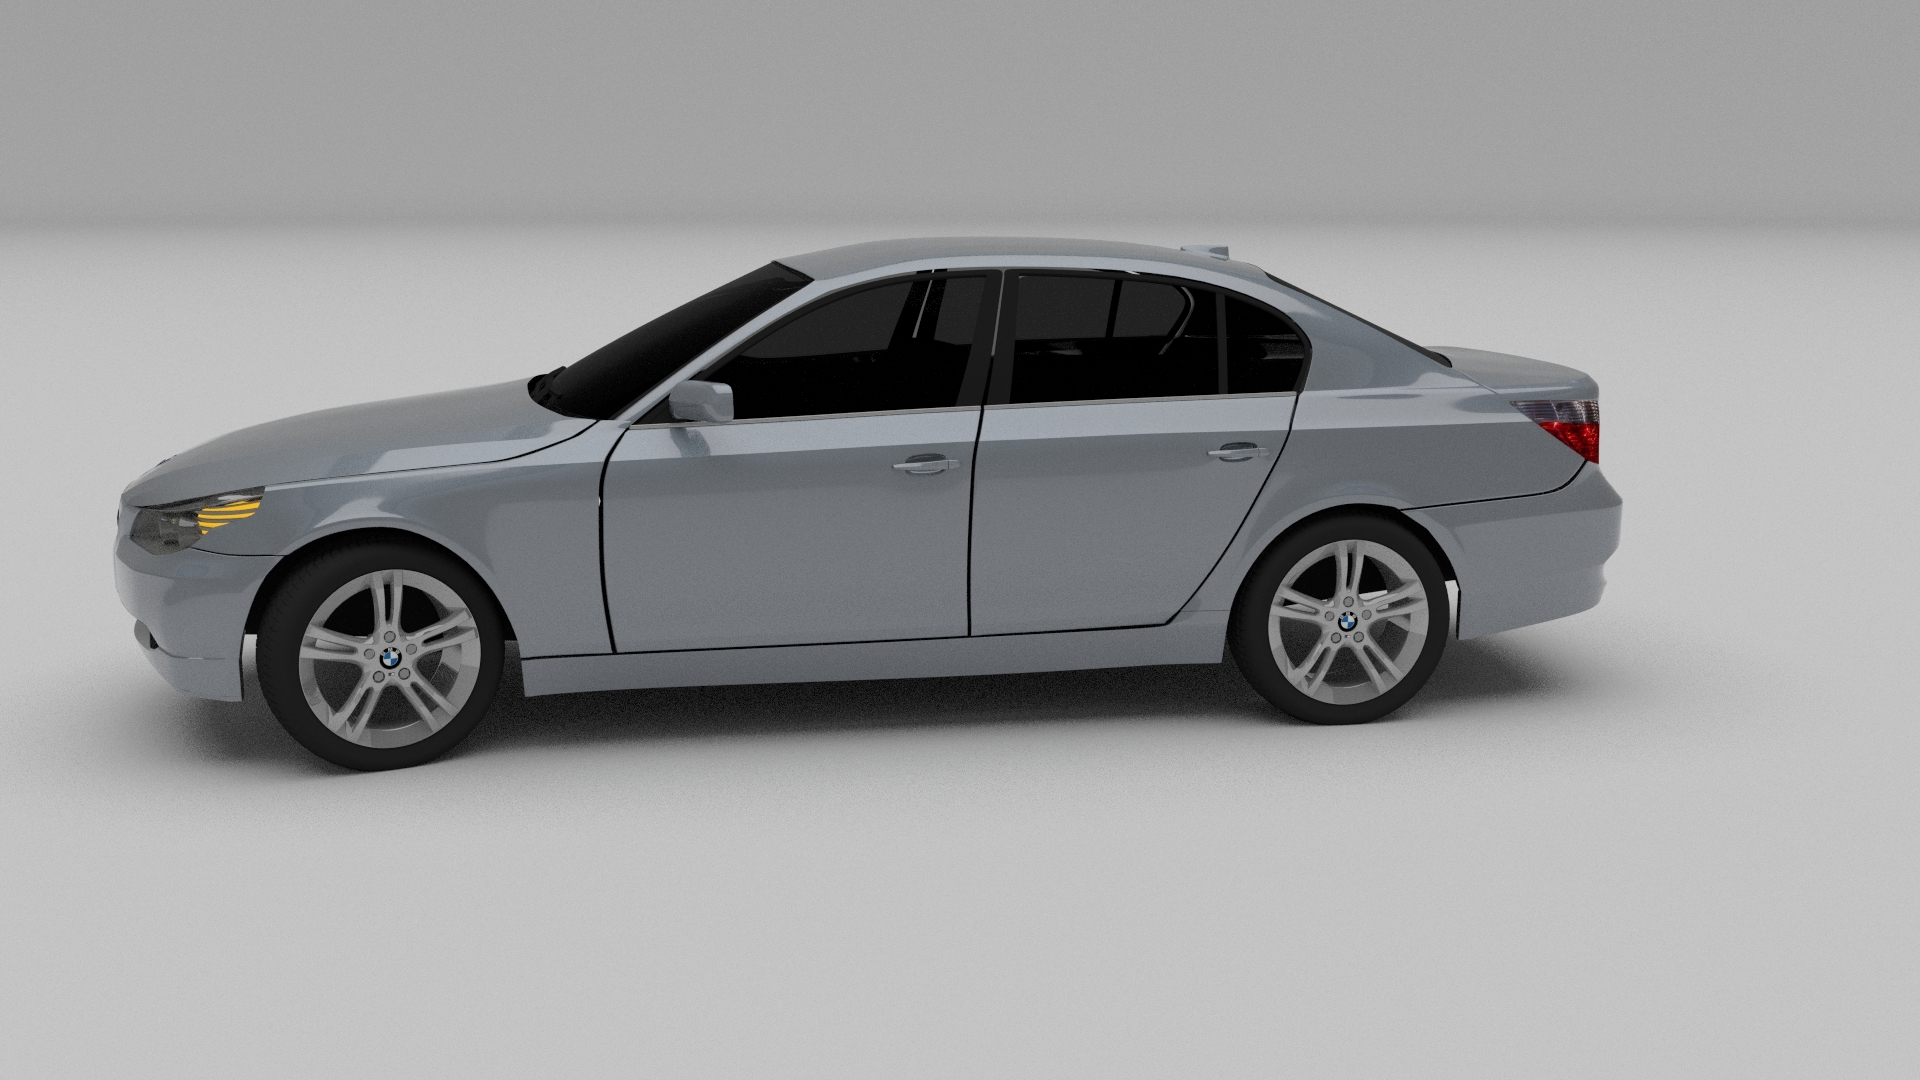 bmw e60 5 series 3d model. Black Bedroom Furniture Sets. Home Design Ideas